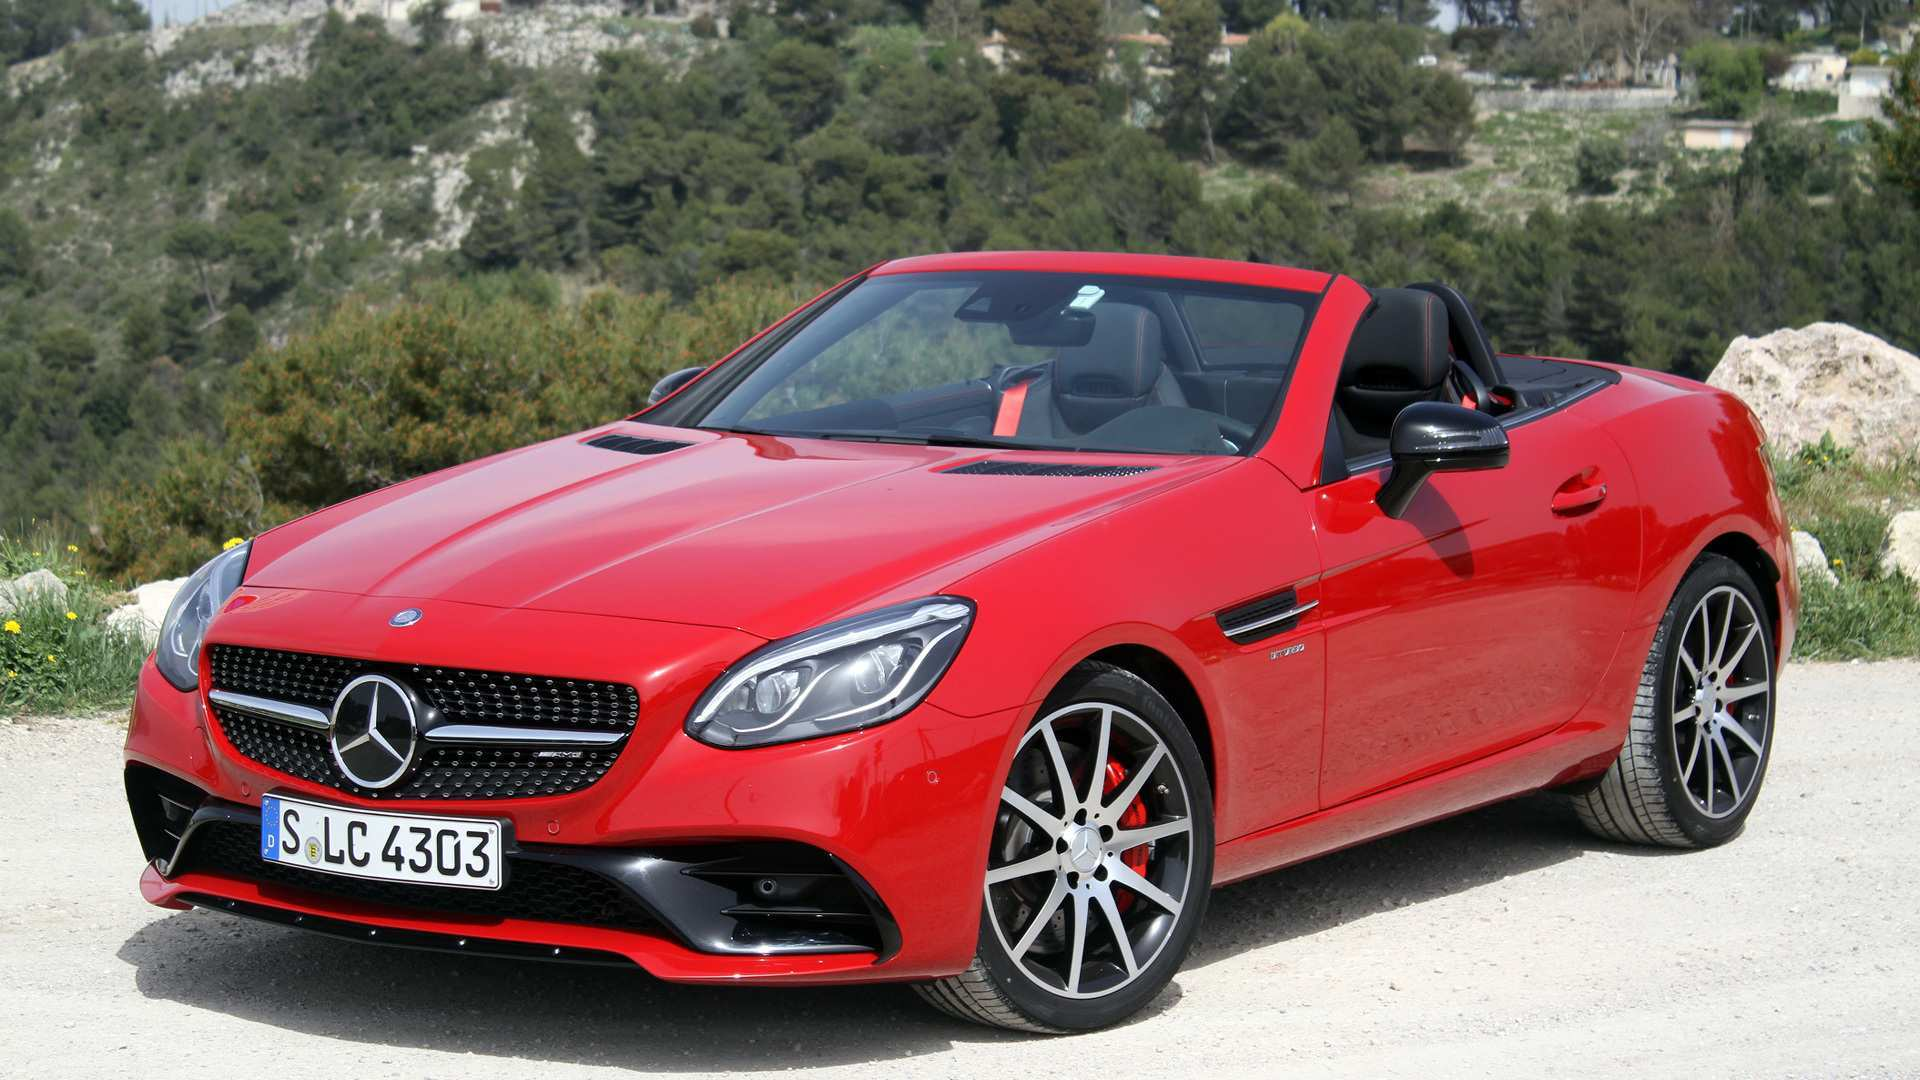 41 All New Mercedes Slc 2020 Style for Mercedes Slc 2020